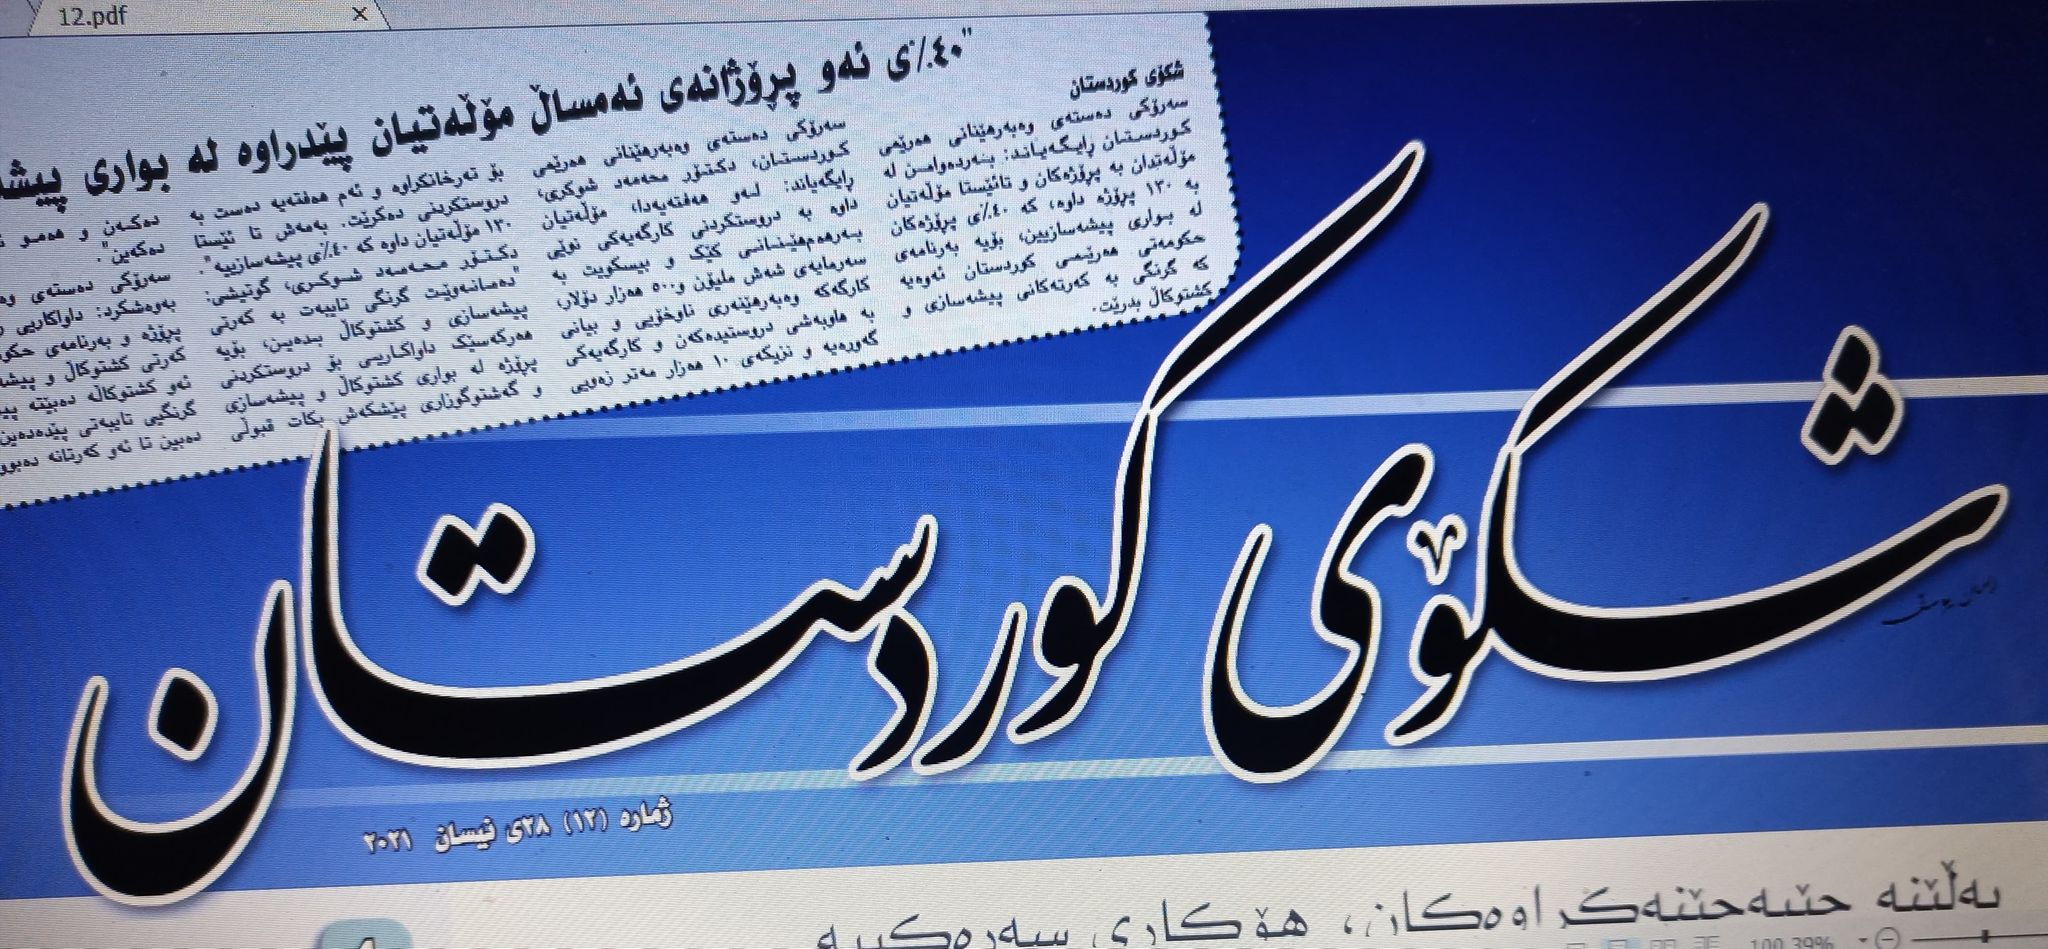 Photo of Read all articles and features of 12th issue of Shkoi Kurdistan newspaper